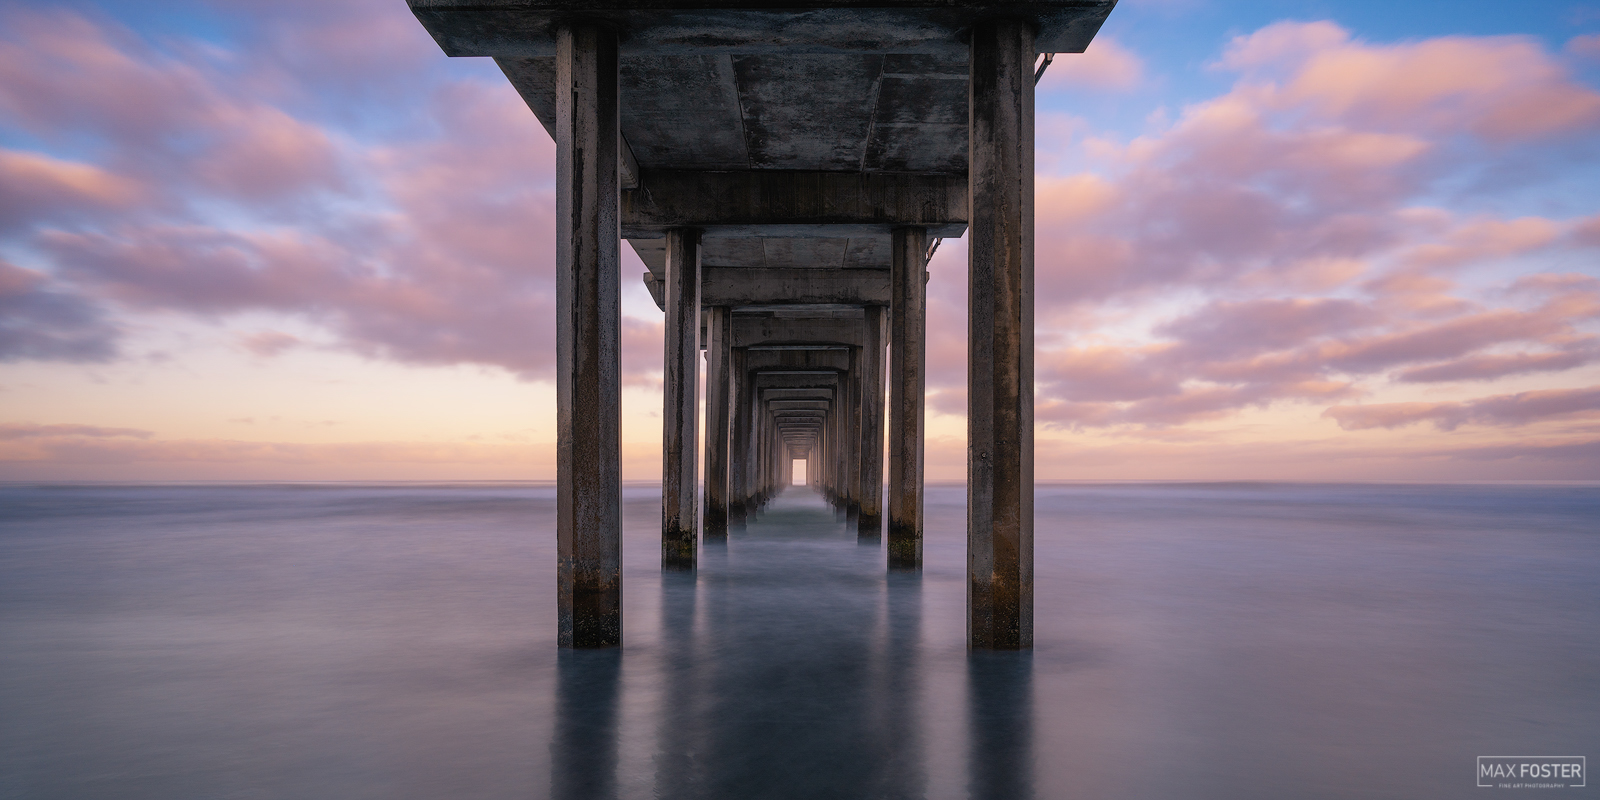 Fine Art Limited Edition of 100 The panoramic format version of Cotton Candy Skies, taken at Scripps Pier in La Jolla, California...